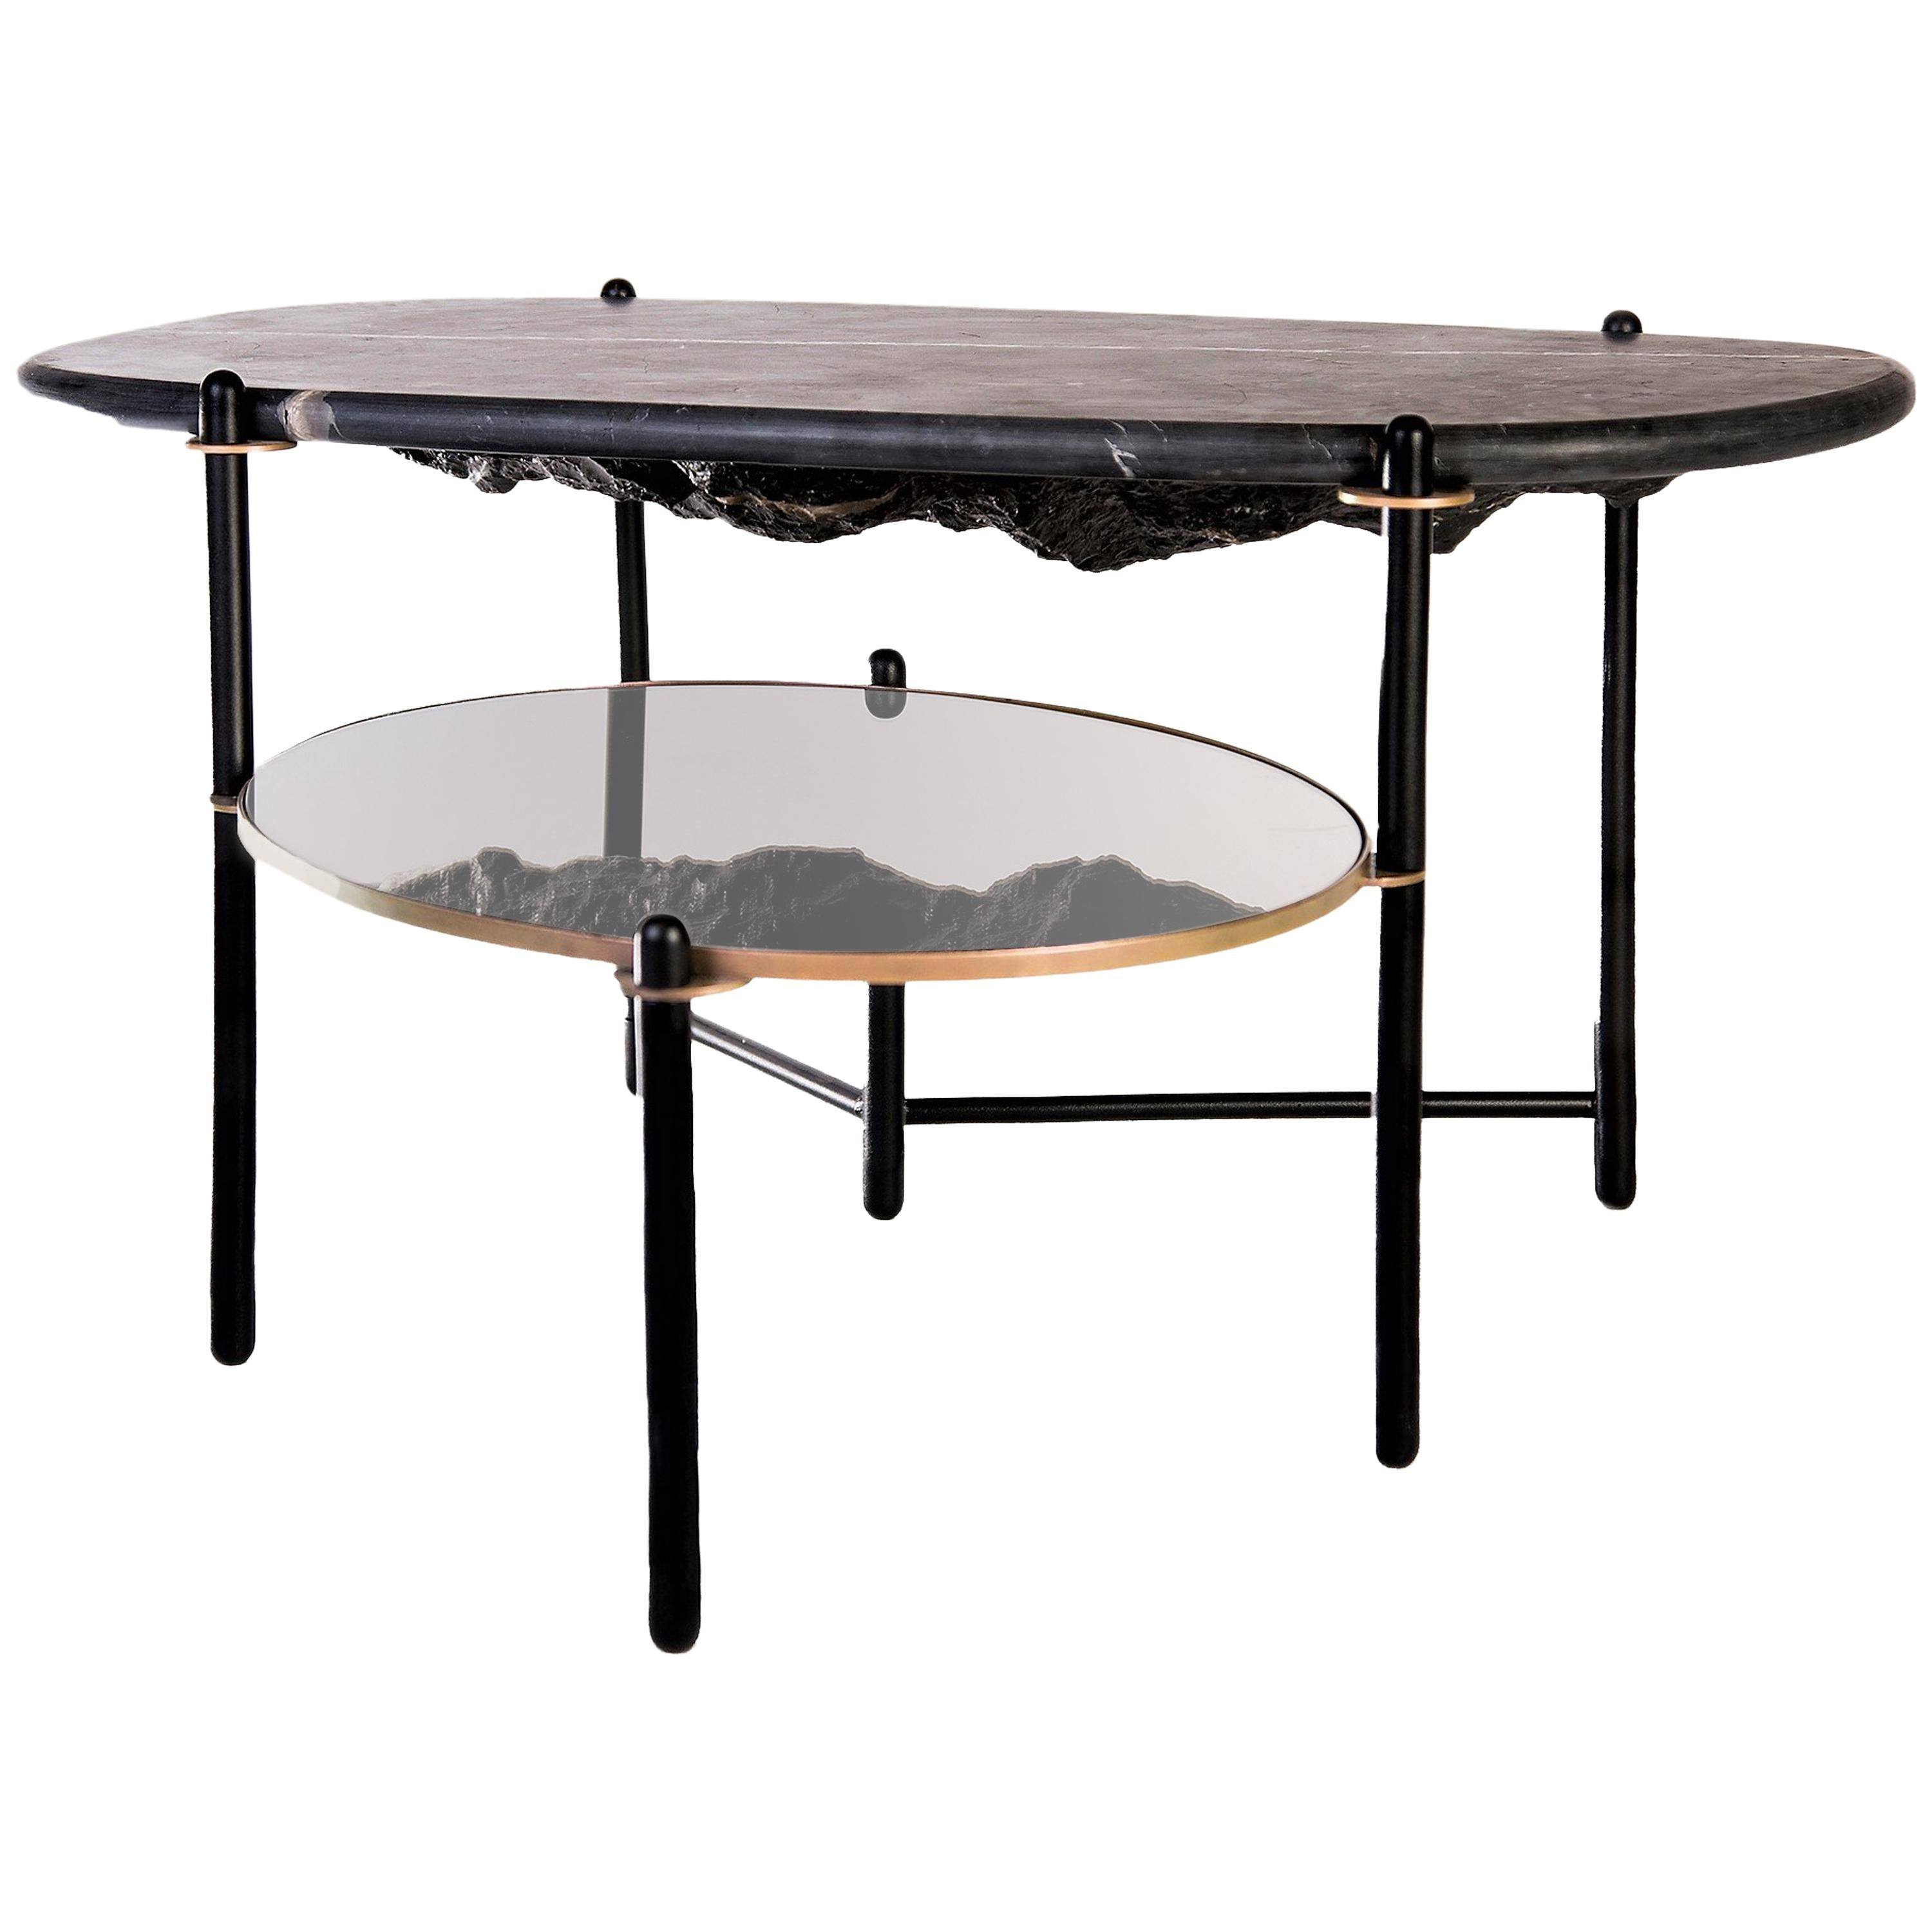 Rock Center Table, Contemporary Coffee Table With Marble Top For Sale